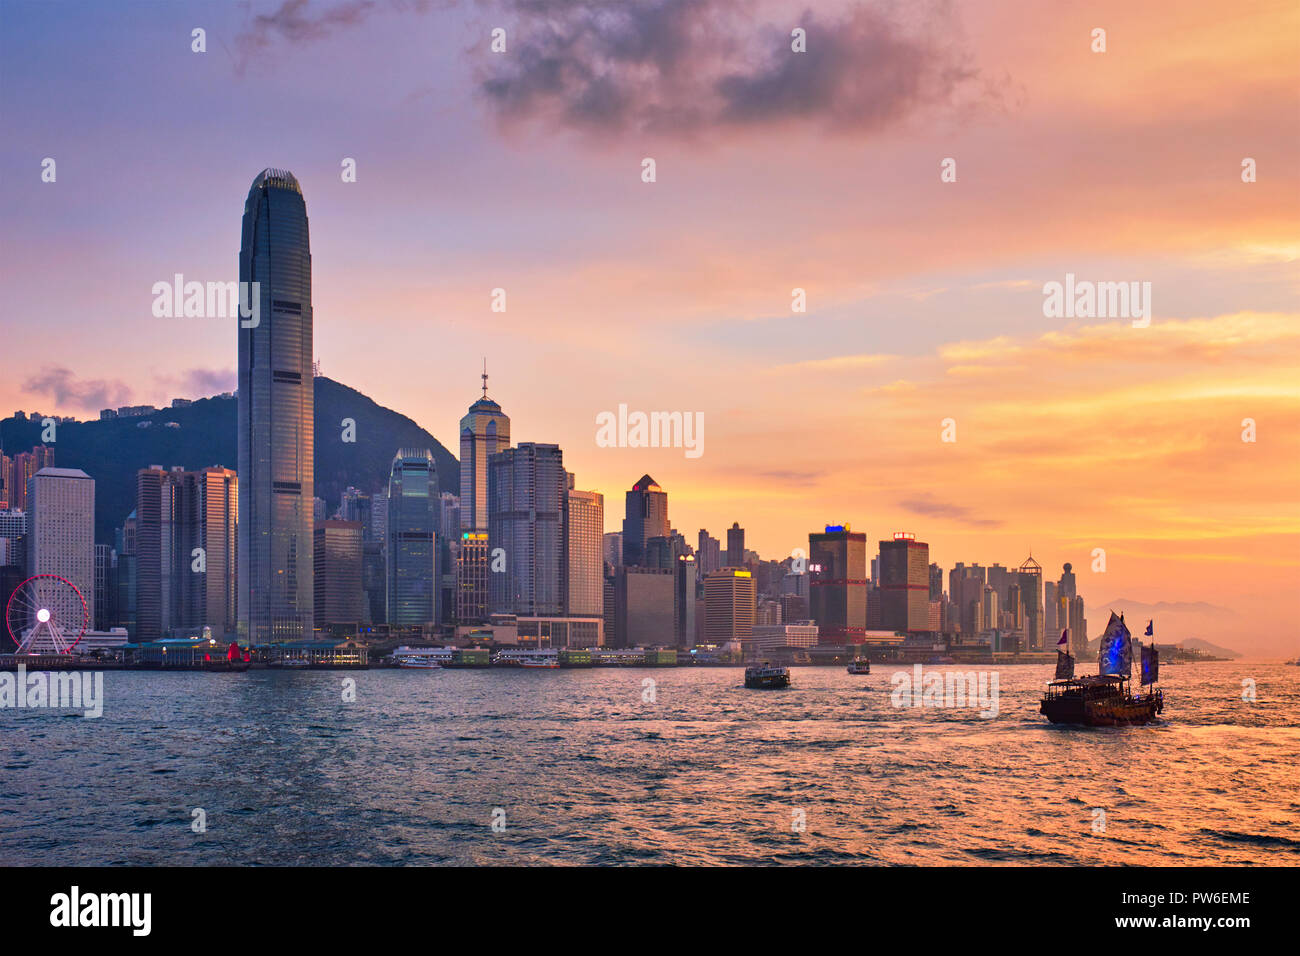 Junk boat in Hong Kong Victoria Harbour - Stock Image